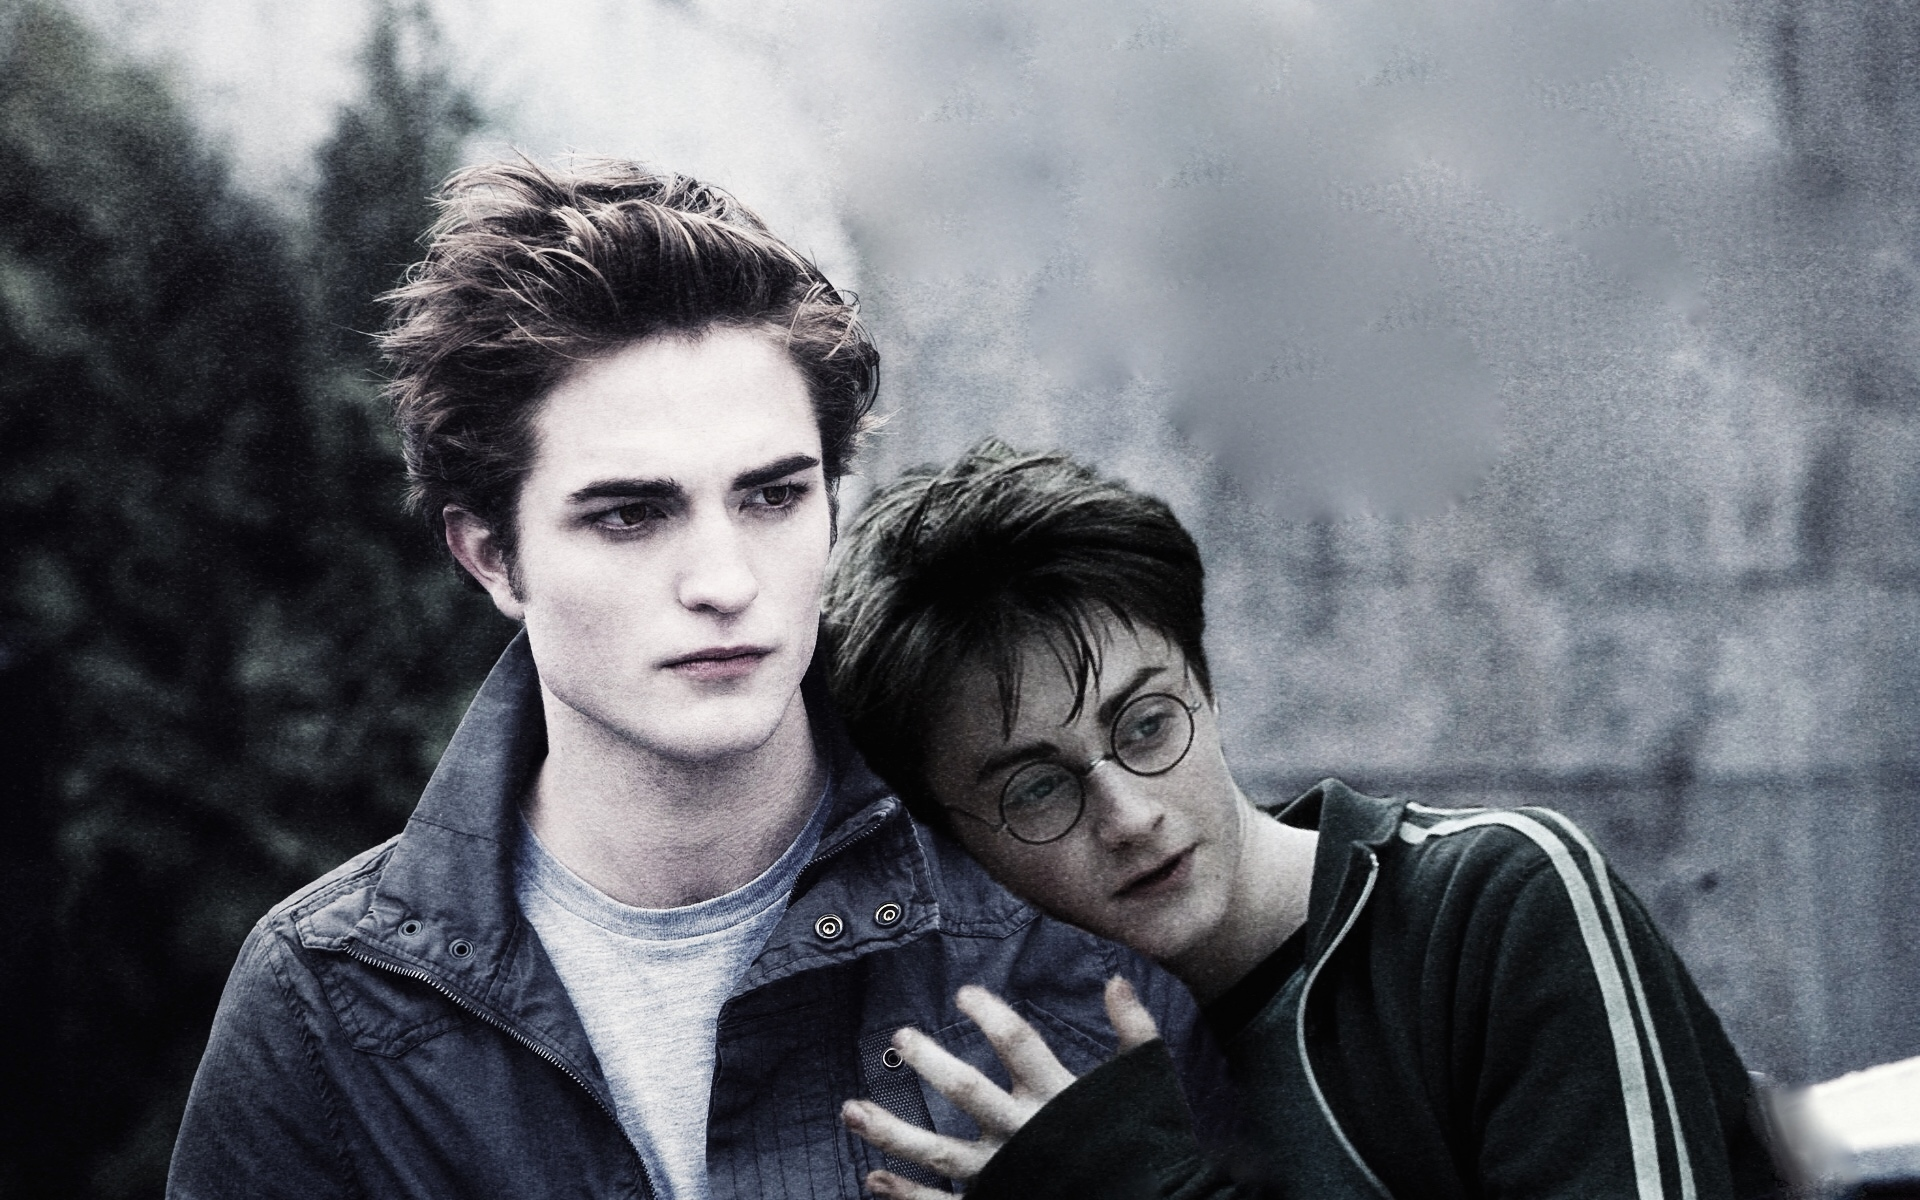 Top Wallpaper Harry Potter Twilight - Lean-On-Me-edward-cullen-and-harry-potter-37692811-1920-1200  Gallery_111089.jpg